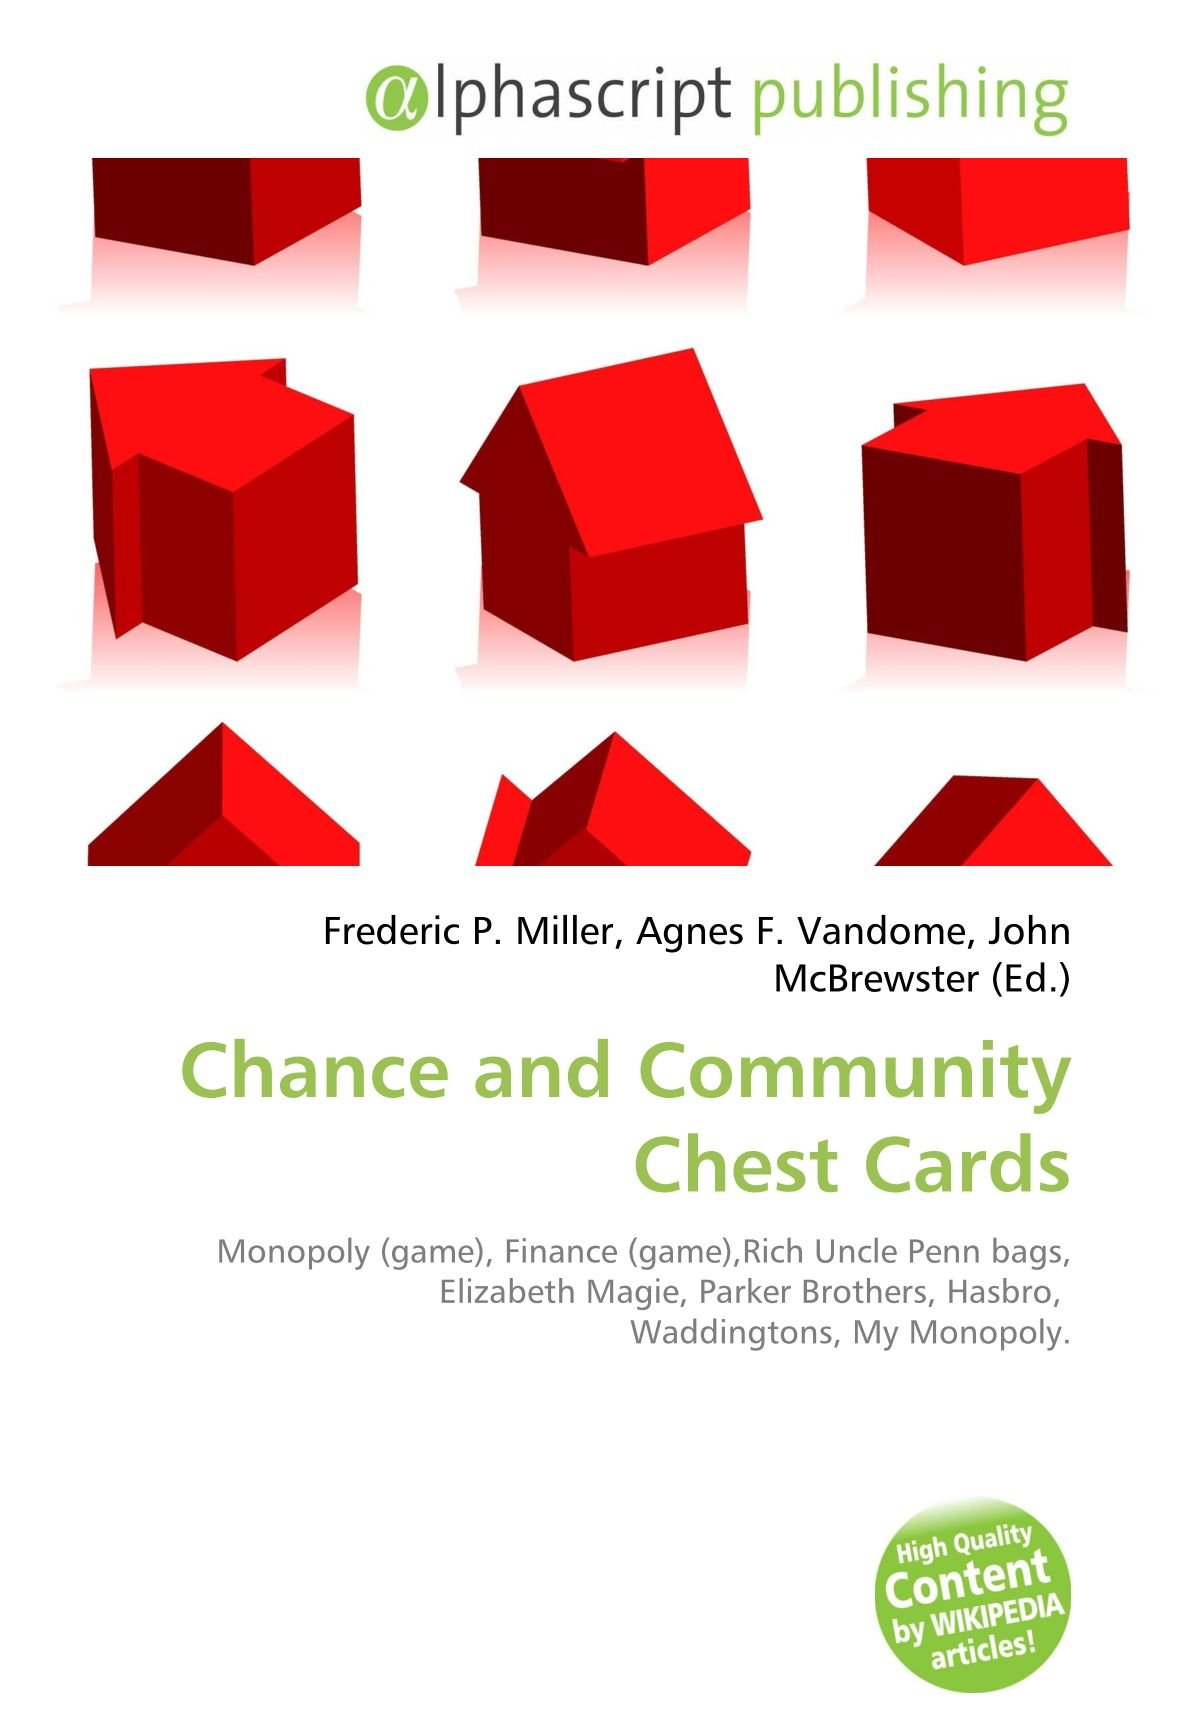 Chance and Community Chest Cards: Monopoly game , Finance game ,Rich Uncle Penn bags, Elizabeth Magie, Parker Brothers, Hasbro, Waddingtons, My Monopoly.: Amazon.es: Miller, Frederic P, Vandome, Agnes F, McBrewster, John: Libros